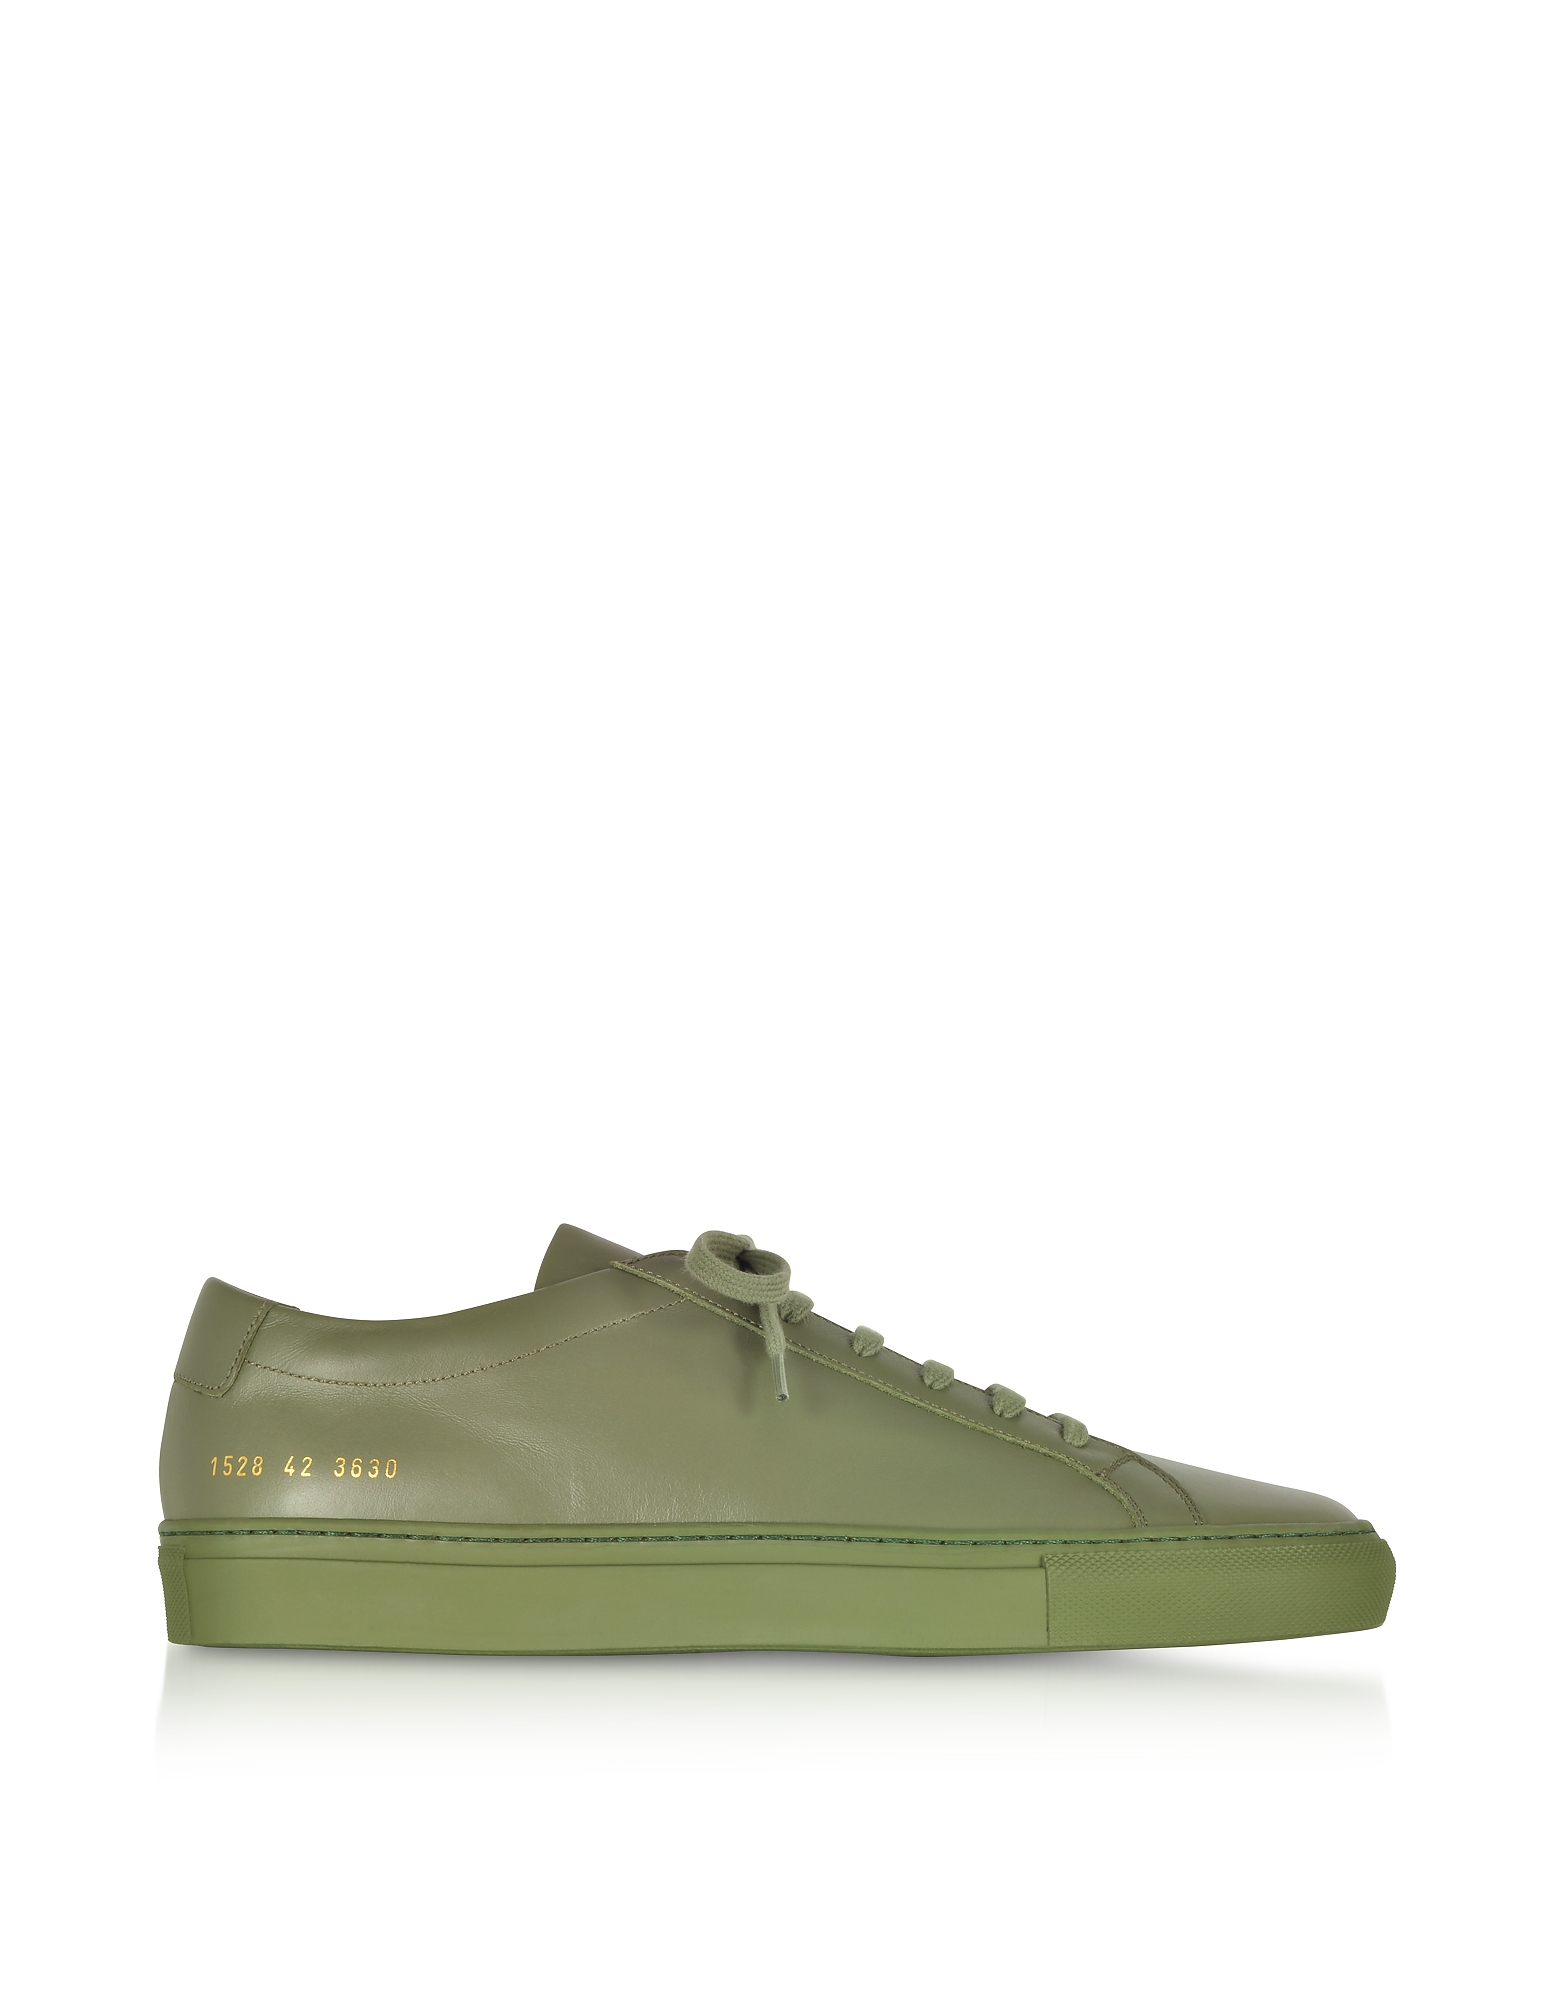 Army Green Leather Original Achilles Low Men's Snaeakers